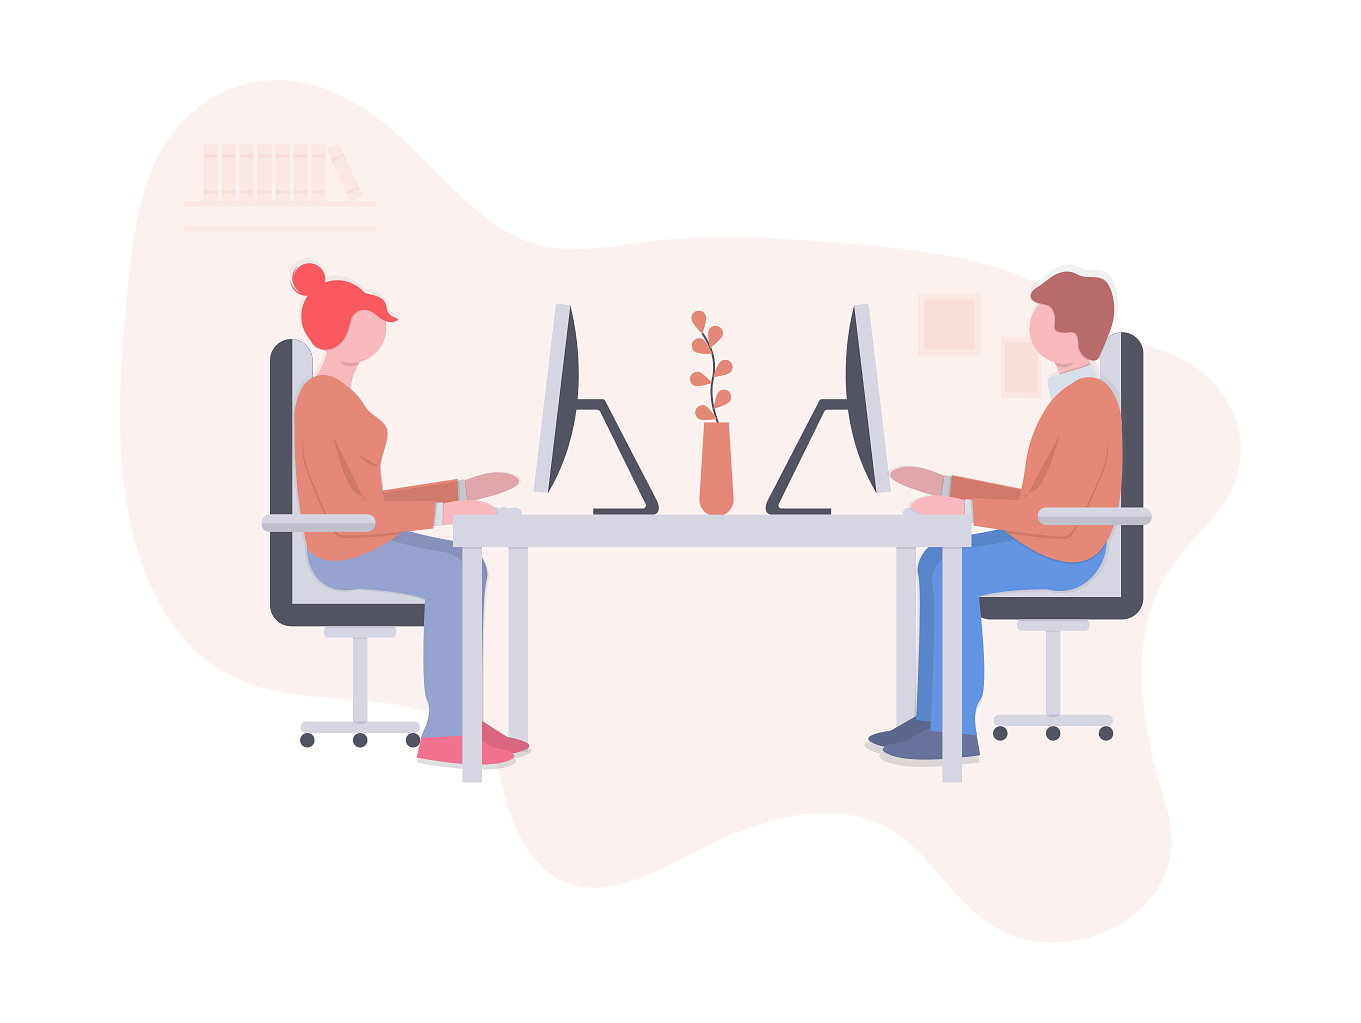 undraw_co-working_825n.png